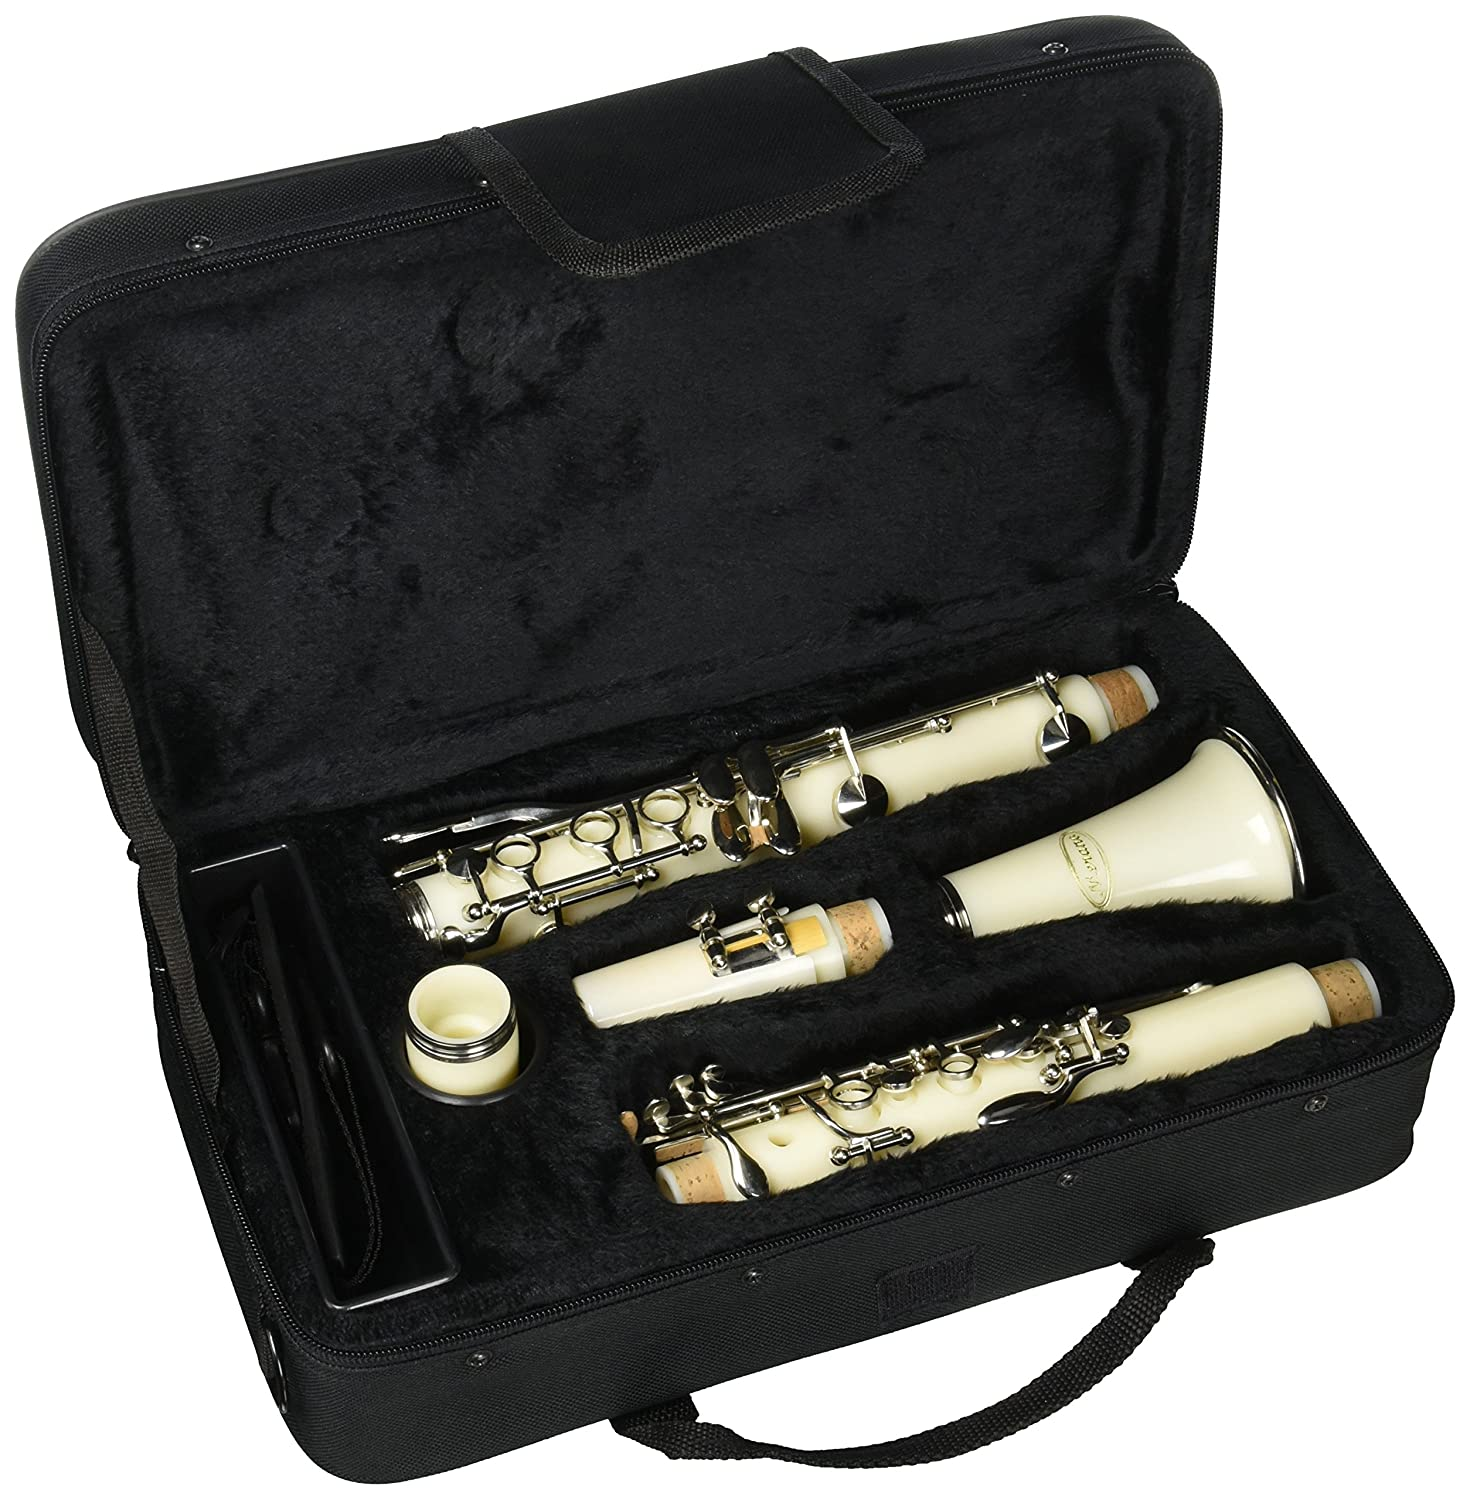 Merano WD401WT B Flat White/Silver Clarinet with Carrying Case, Mouth Piece, Screwdriver, Reed and Cap